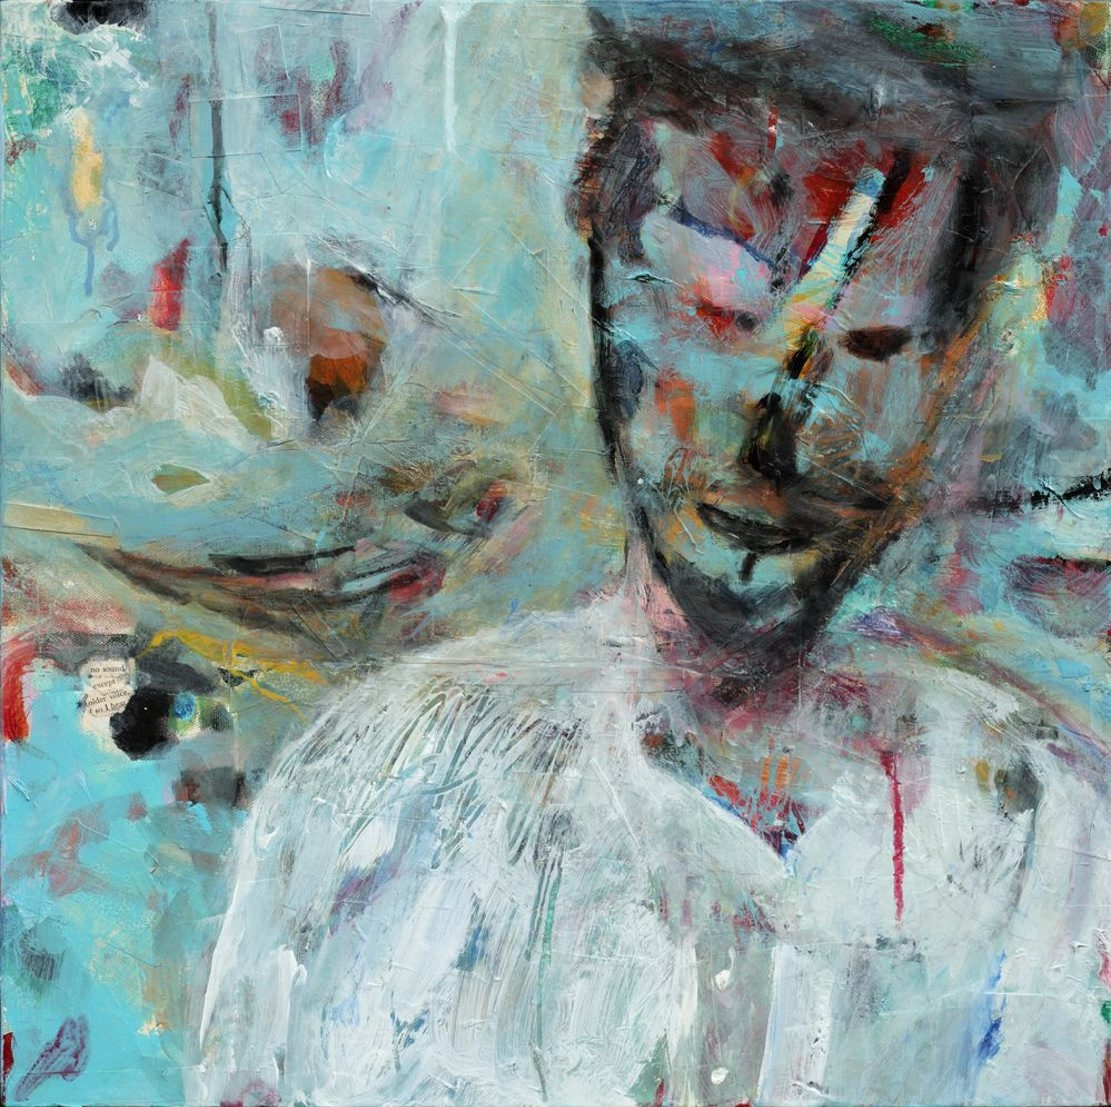 This painting by Mark Palmer is on exhibit in Studio Hart.